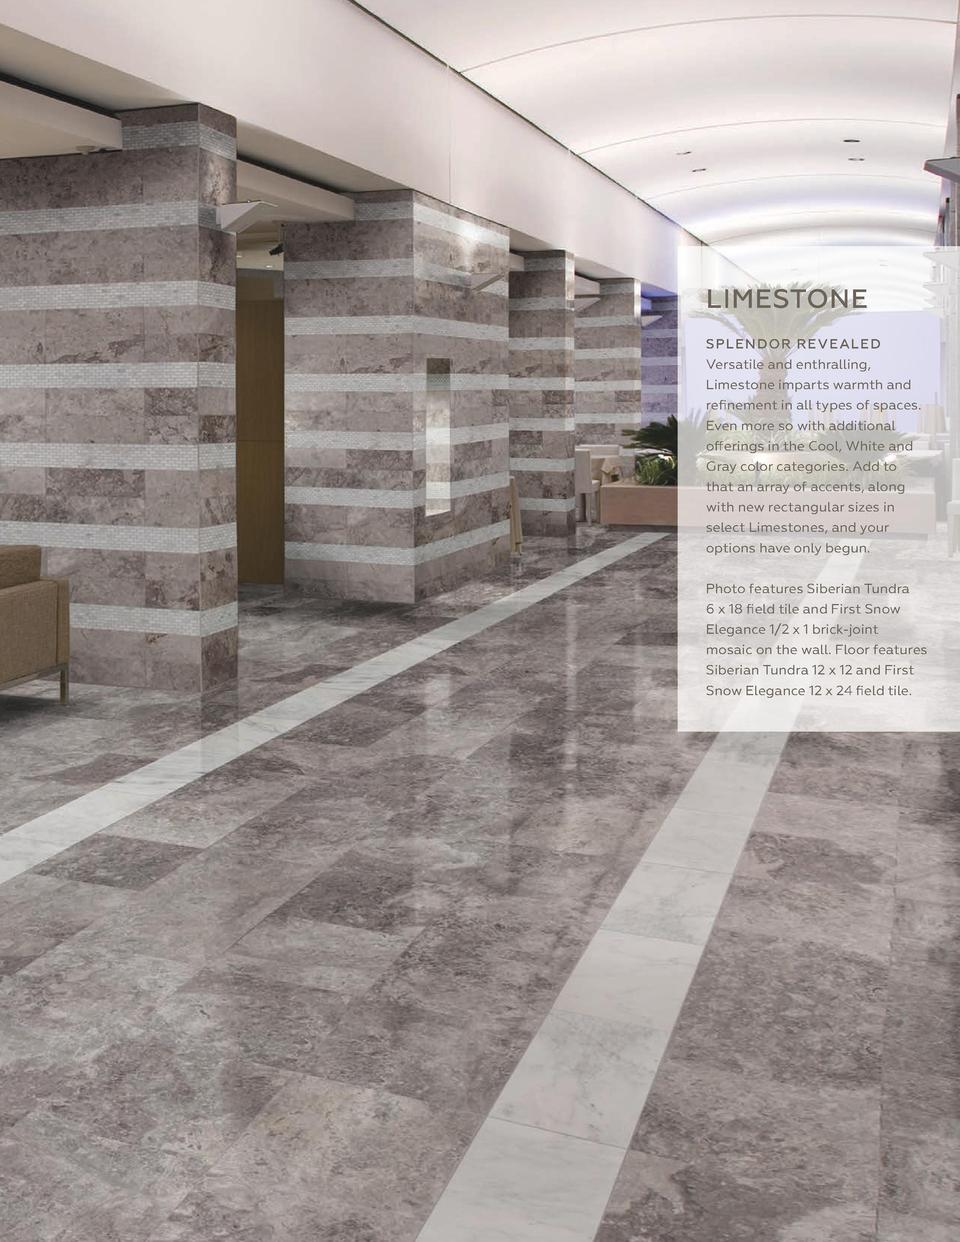 403  LIMESTONE S PLE N DO R R E V E A LE D Versatile and enthralling, Limestone imparts warmth and refinement in all types...